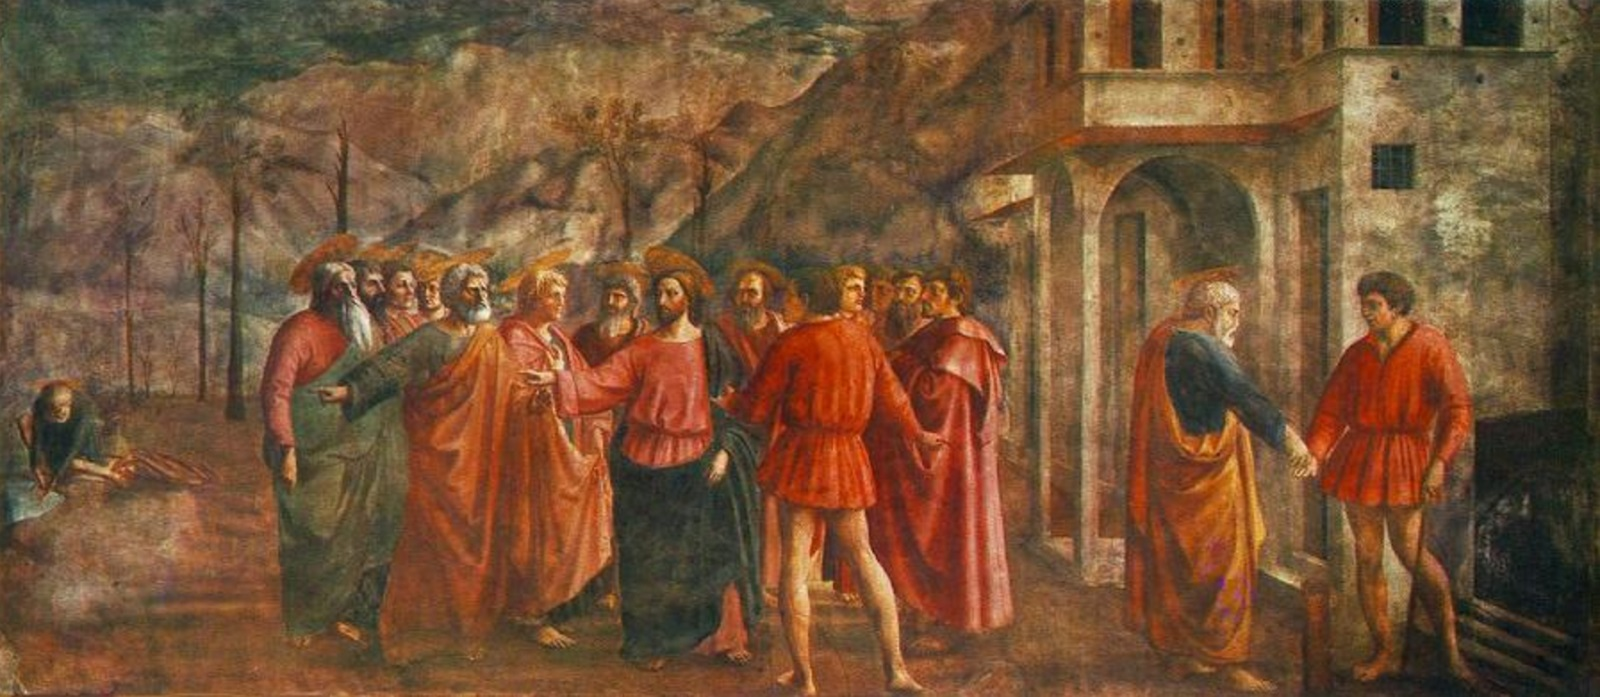 The Tribute Money fresco by Masaccio in the Brancacci Chapel